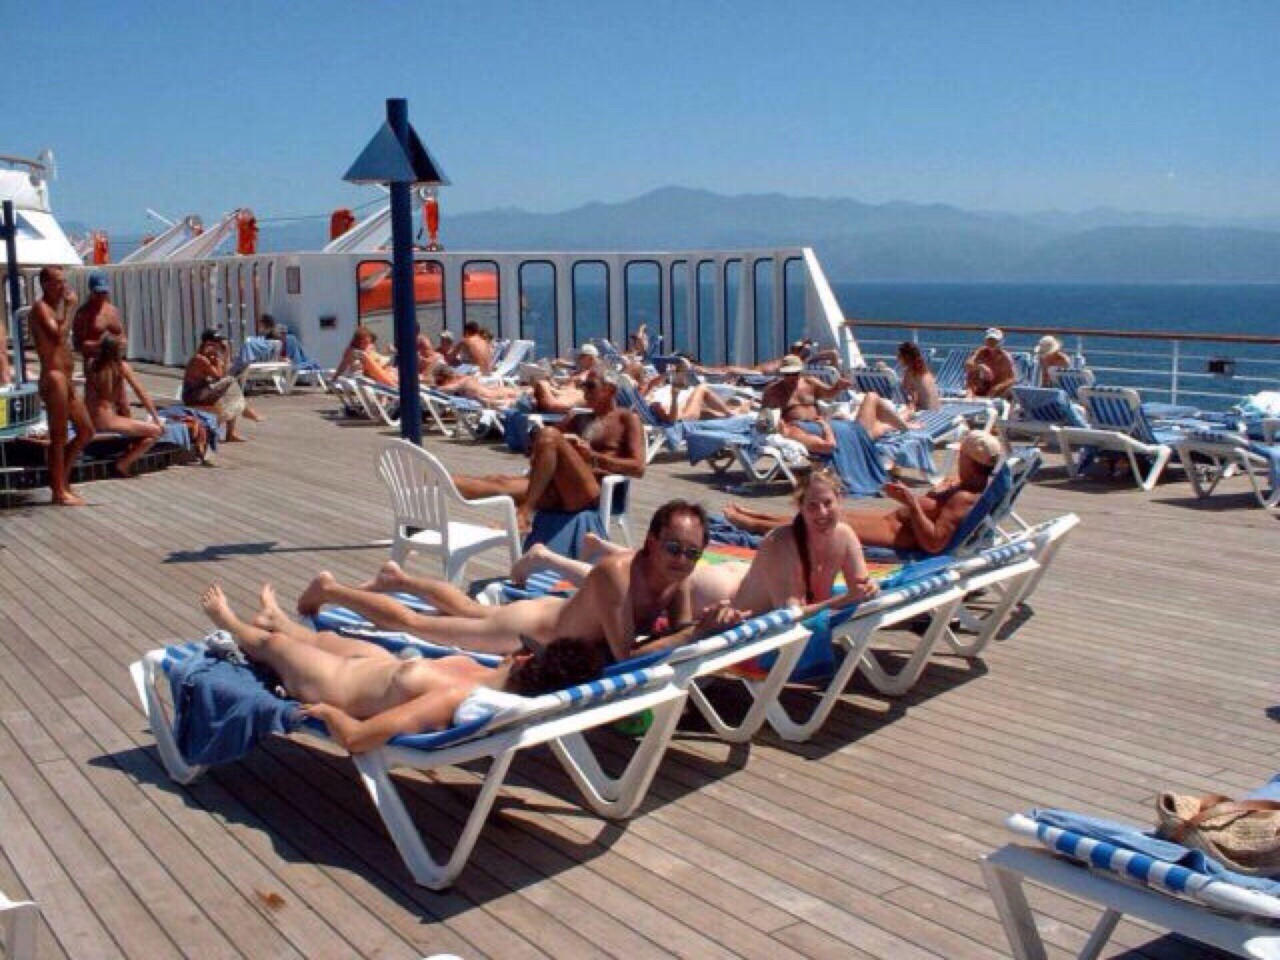 Nudist Idea Go On A Naked Cruise Nu Et Heureux Naked And - Nude cruise ships